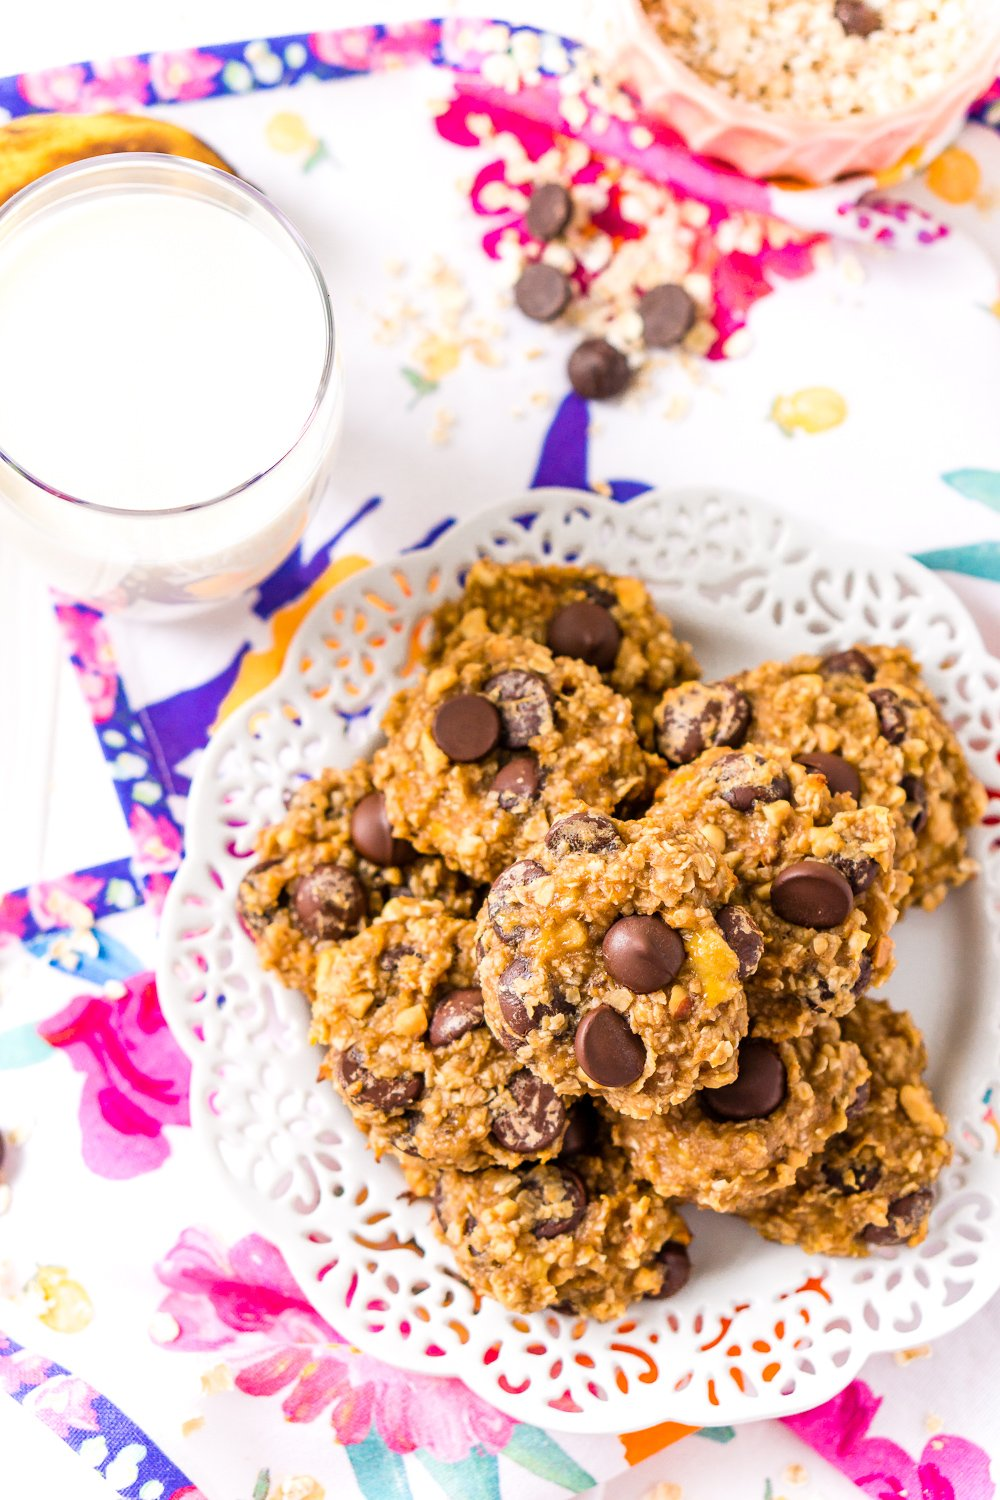 Overhead shot of Banana Chocolate Chip Cookies on white plate with glass of milk.